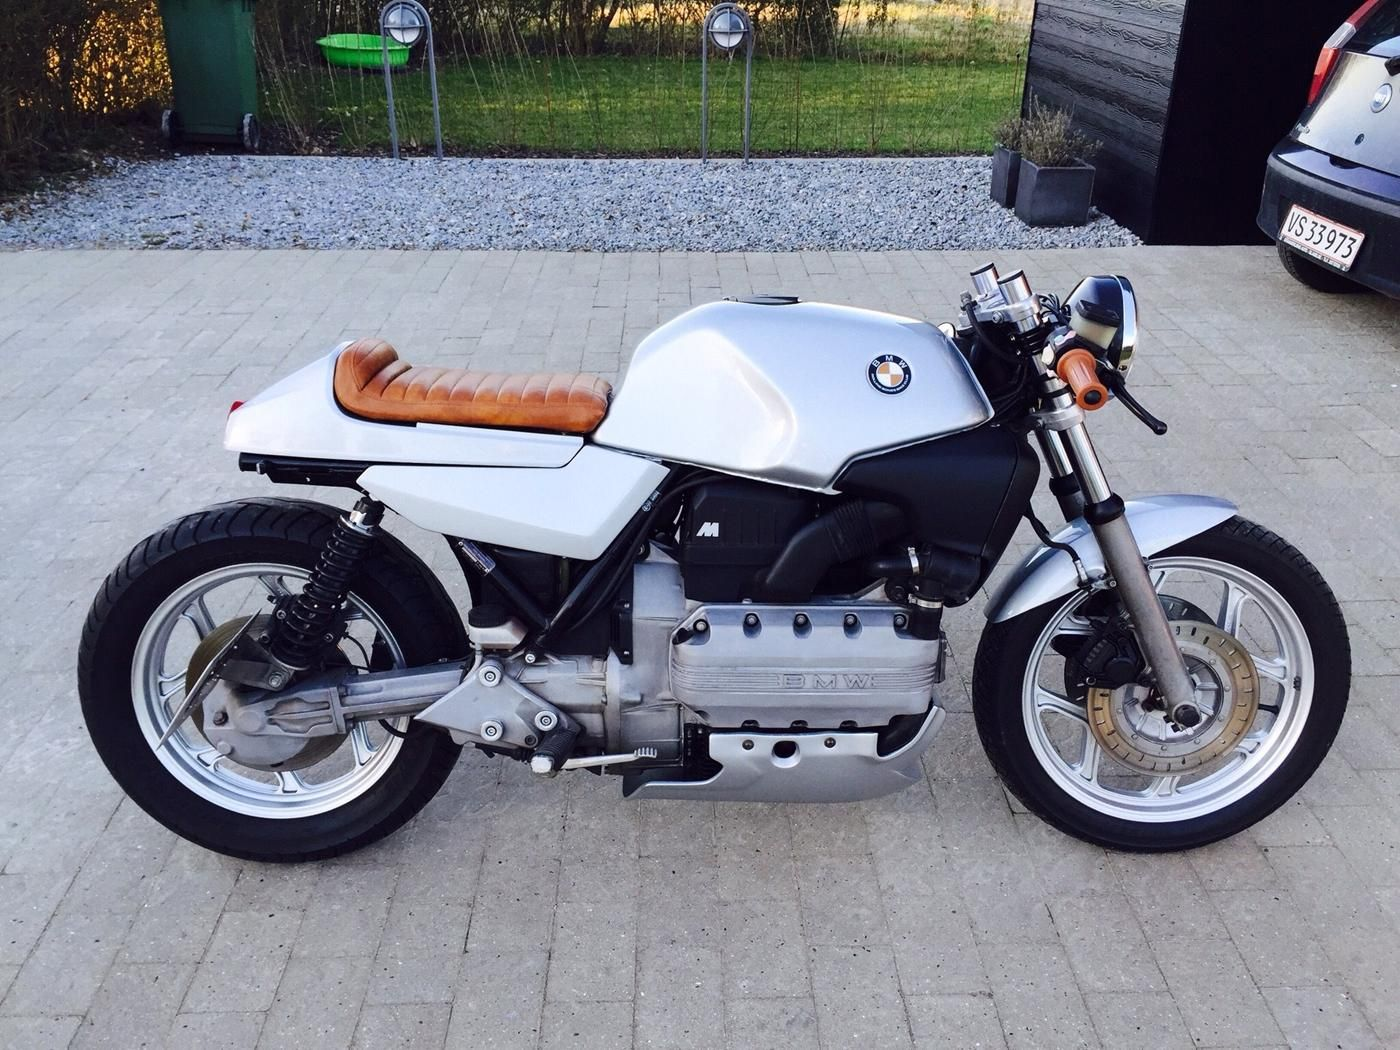 bmw k100 caf bmw bmw k100 bmw bmw cafe racer. Black Bedroom Furniture Sets. Home Design Ideas